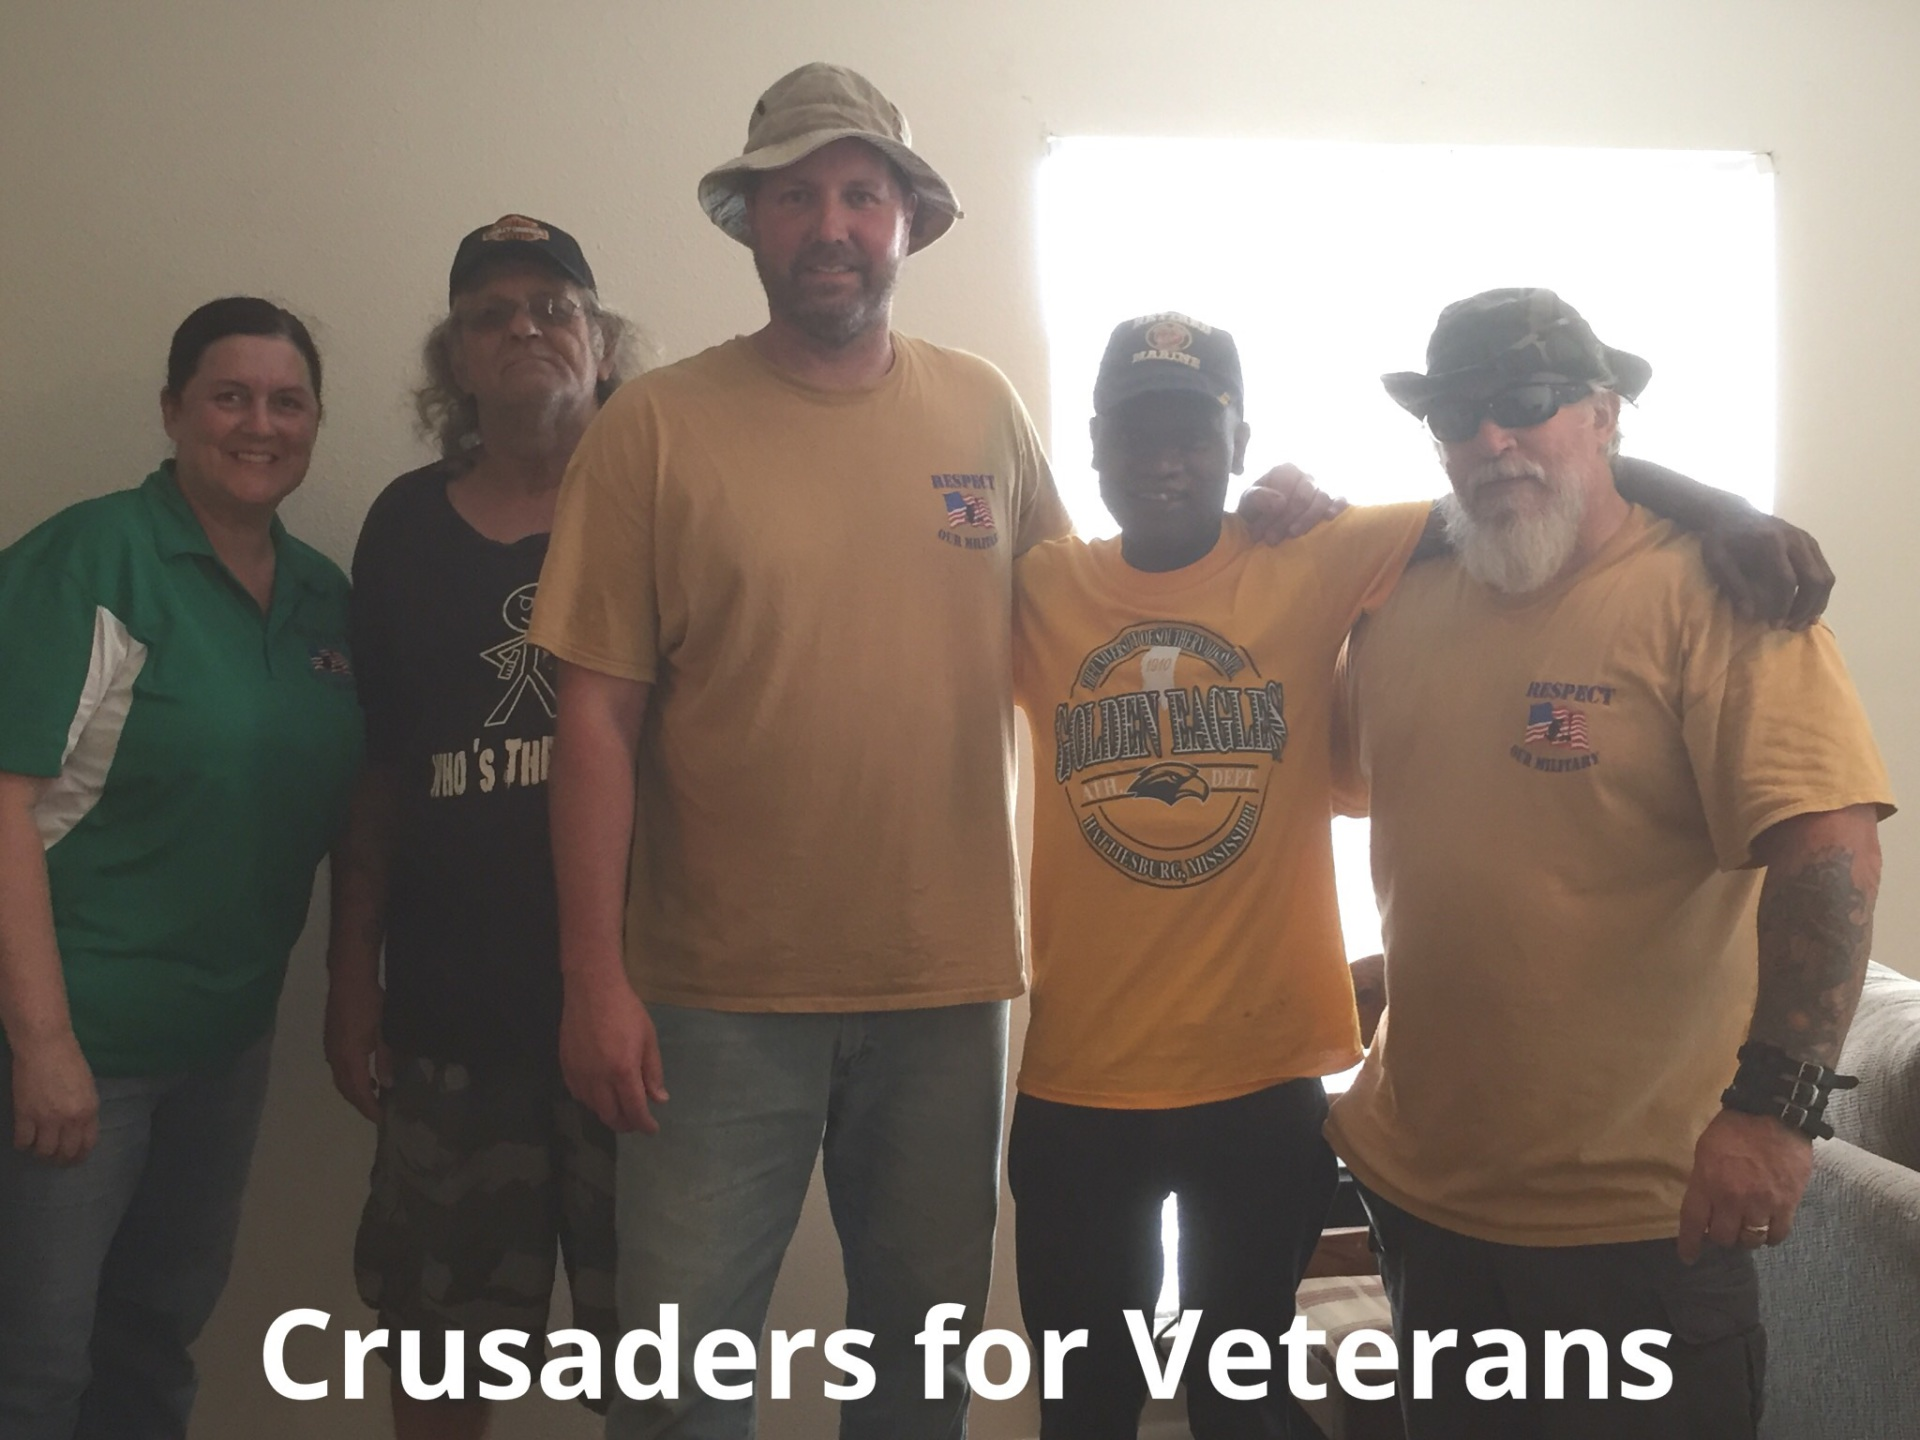 Caring for Honorably discharged struggling Veterans